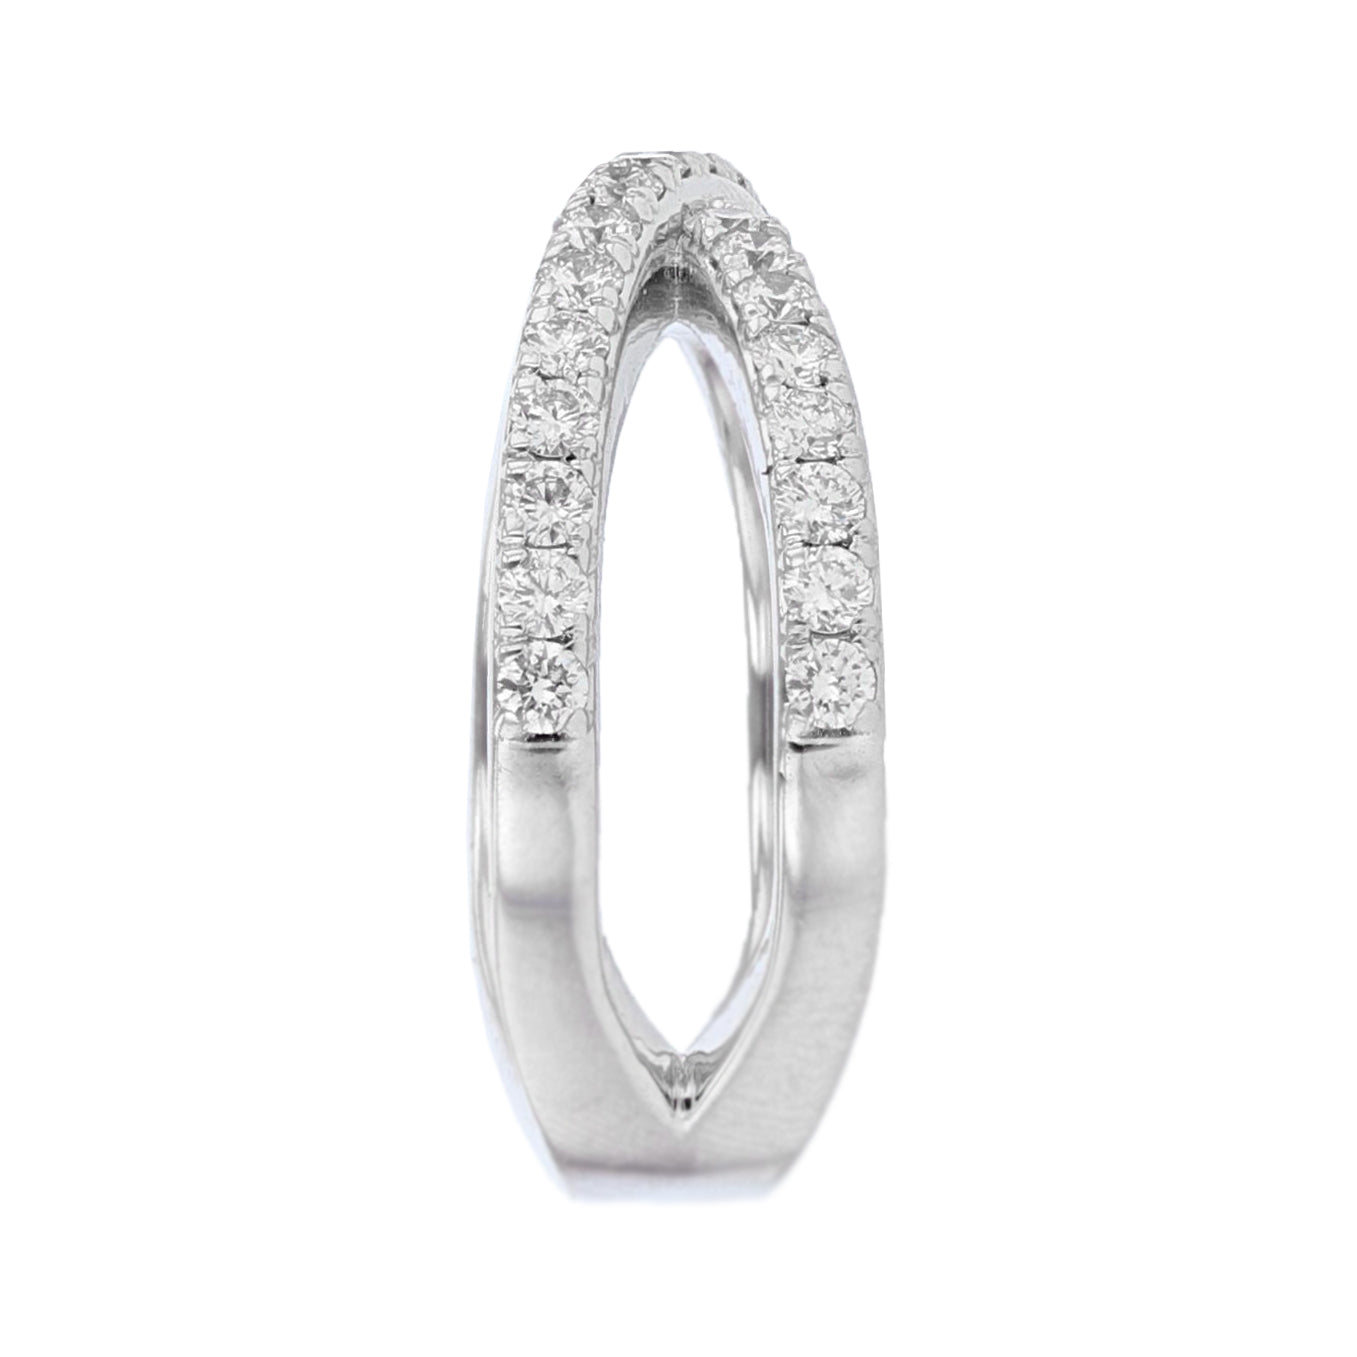 18K White Gold Diamond Criss Cross Ring